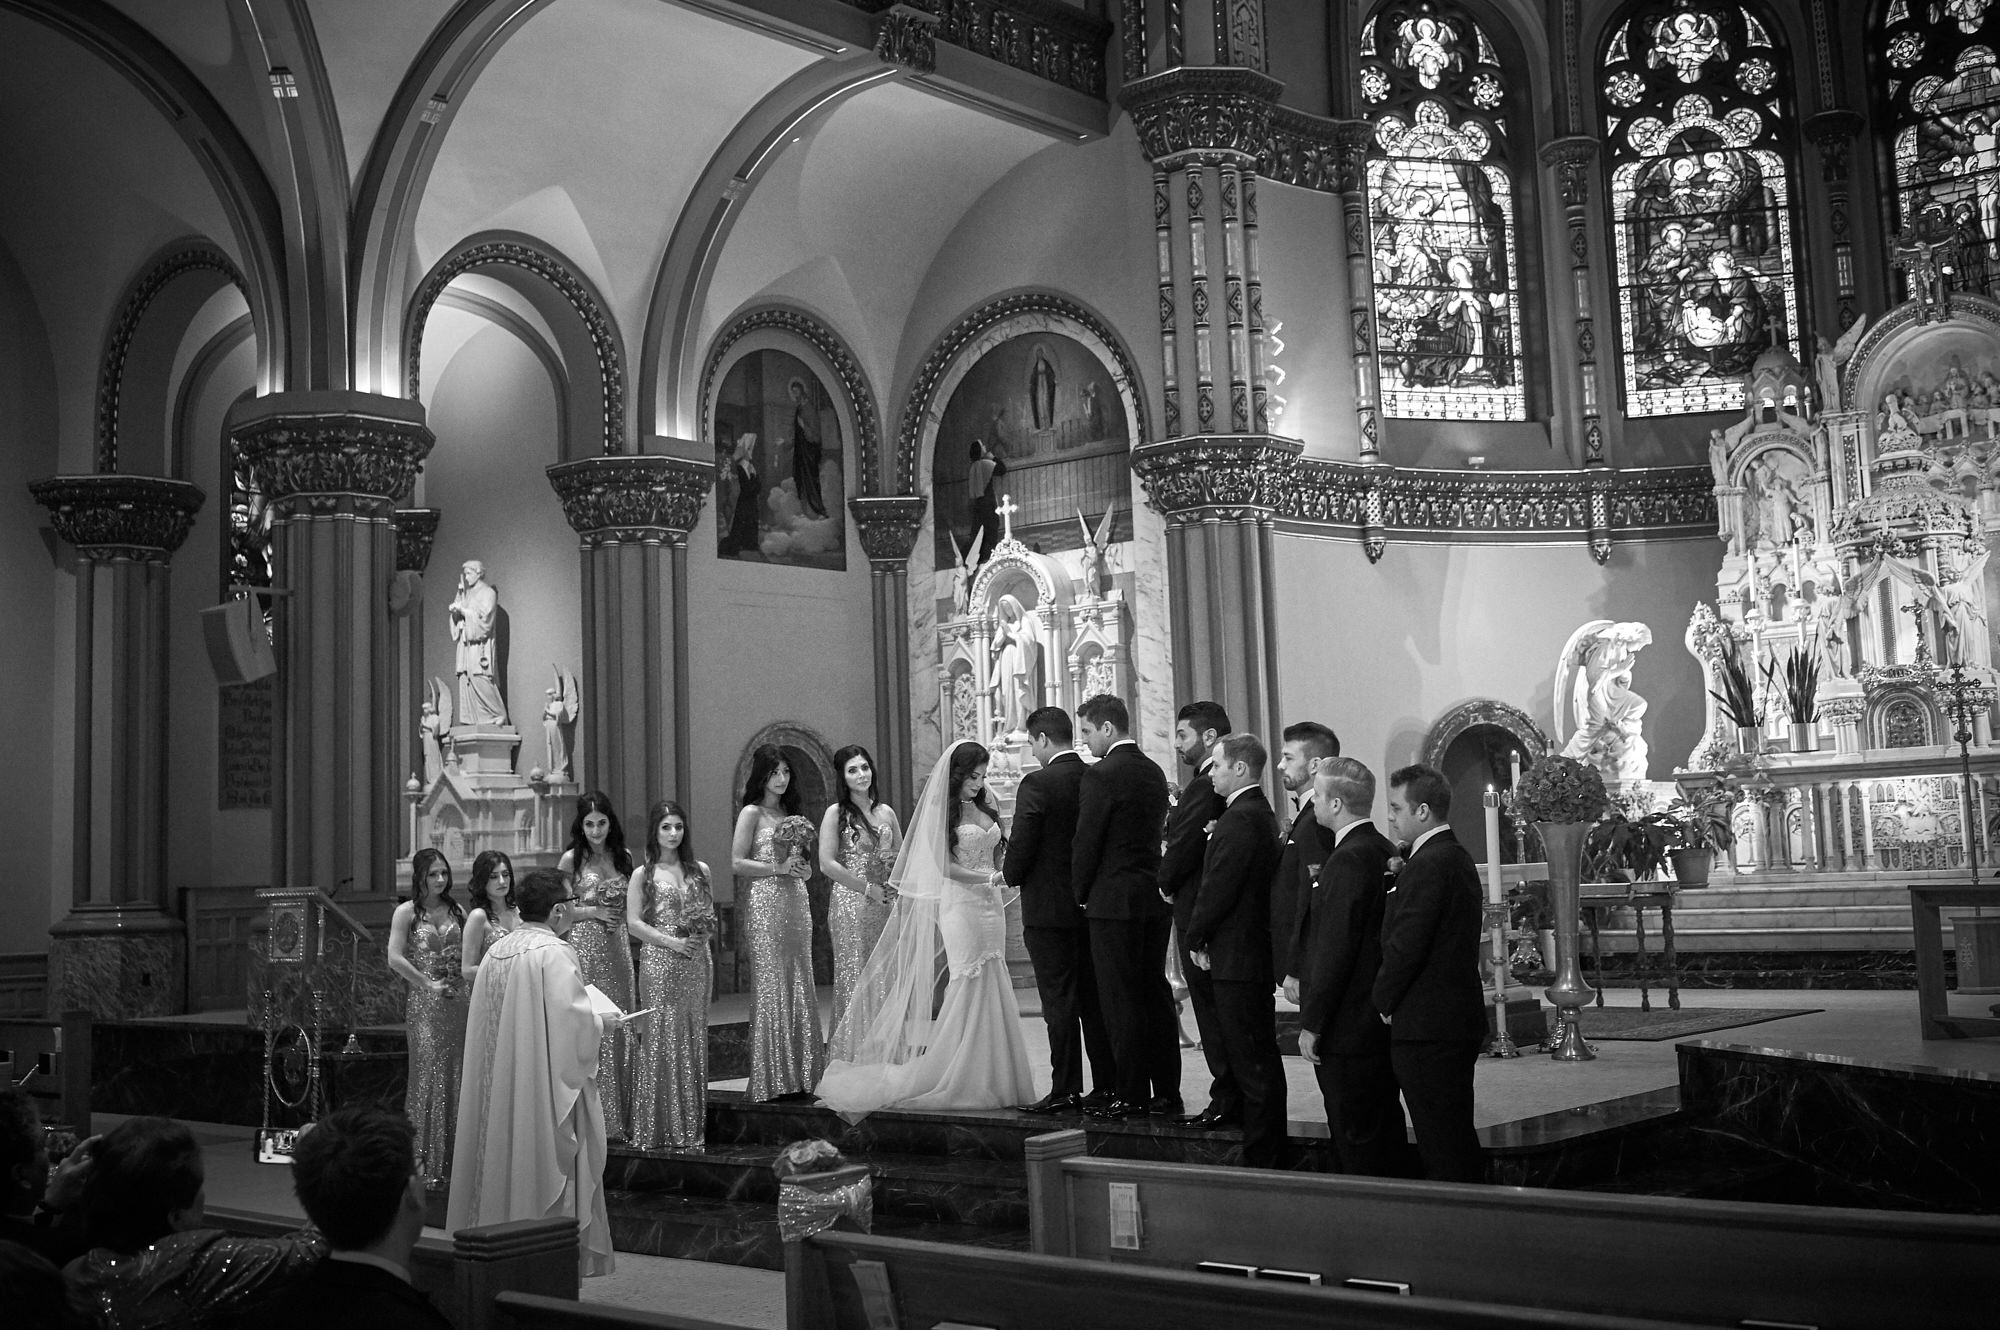 15.1-depaul-wedding-church-i-do Knickerbocker Hotel, Chicago Wedding - Magdalynn + Joseph